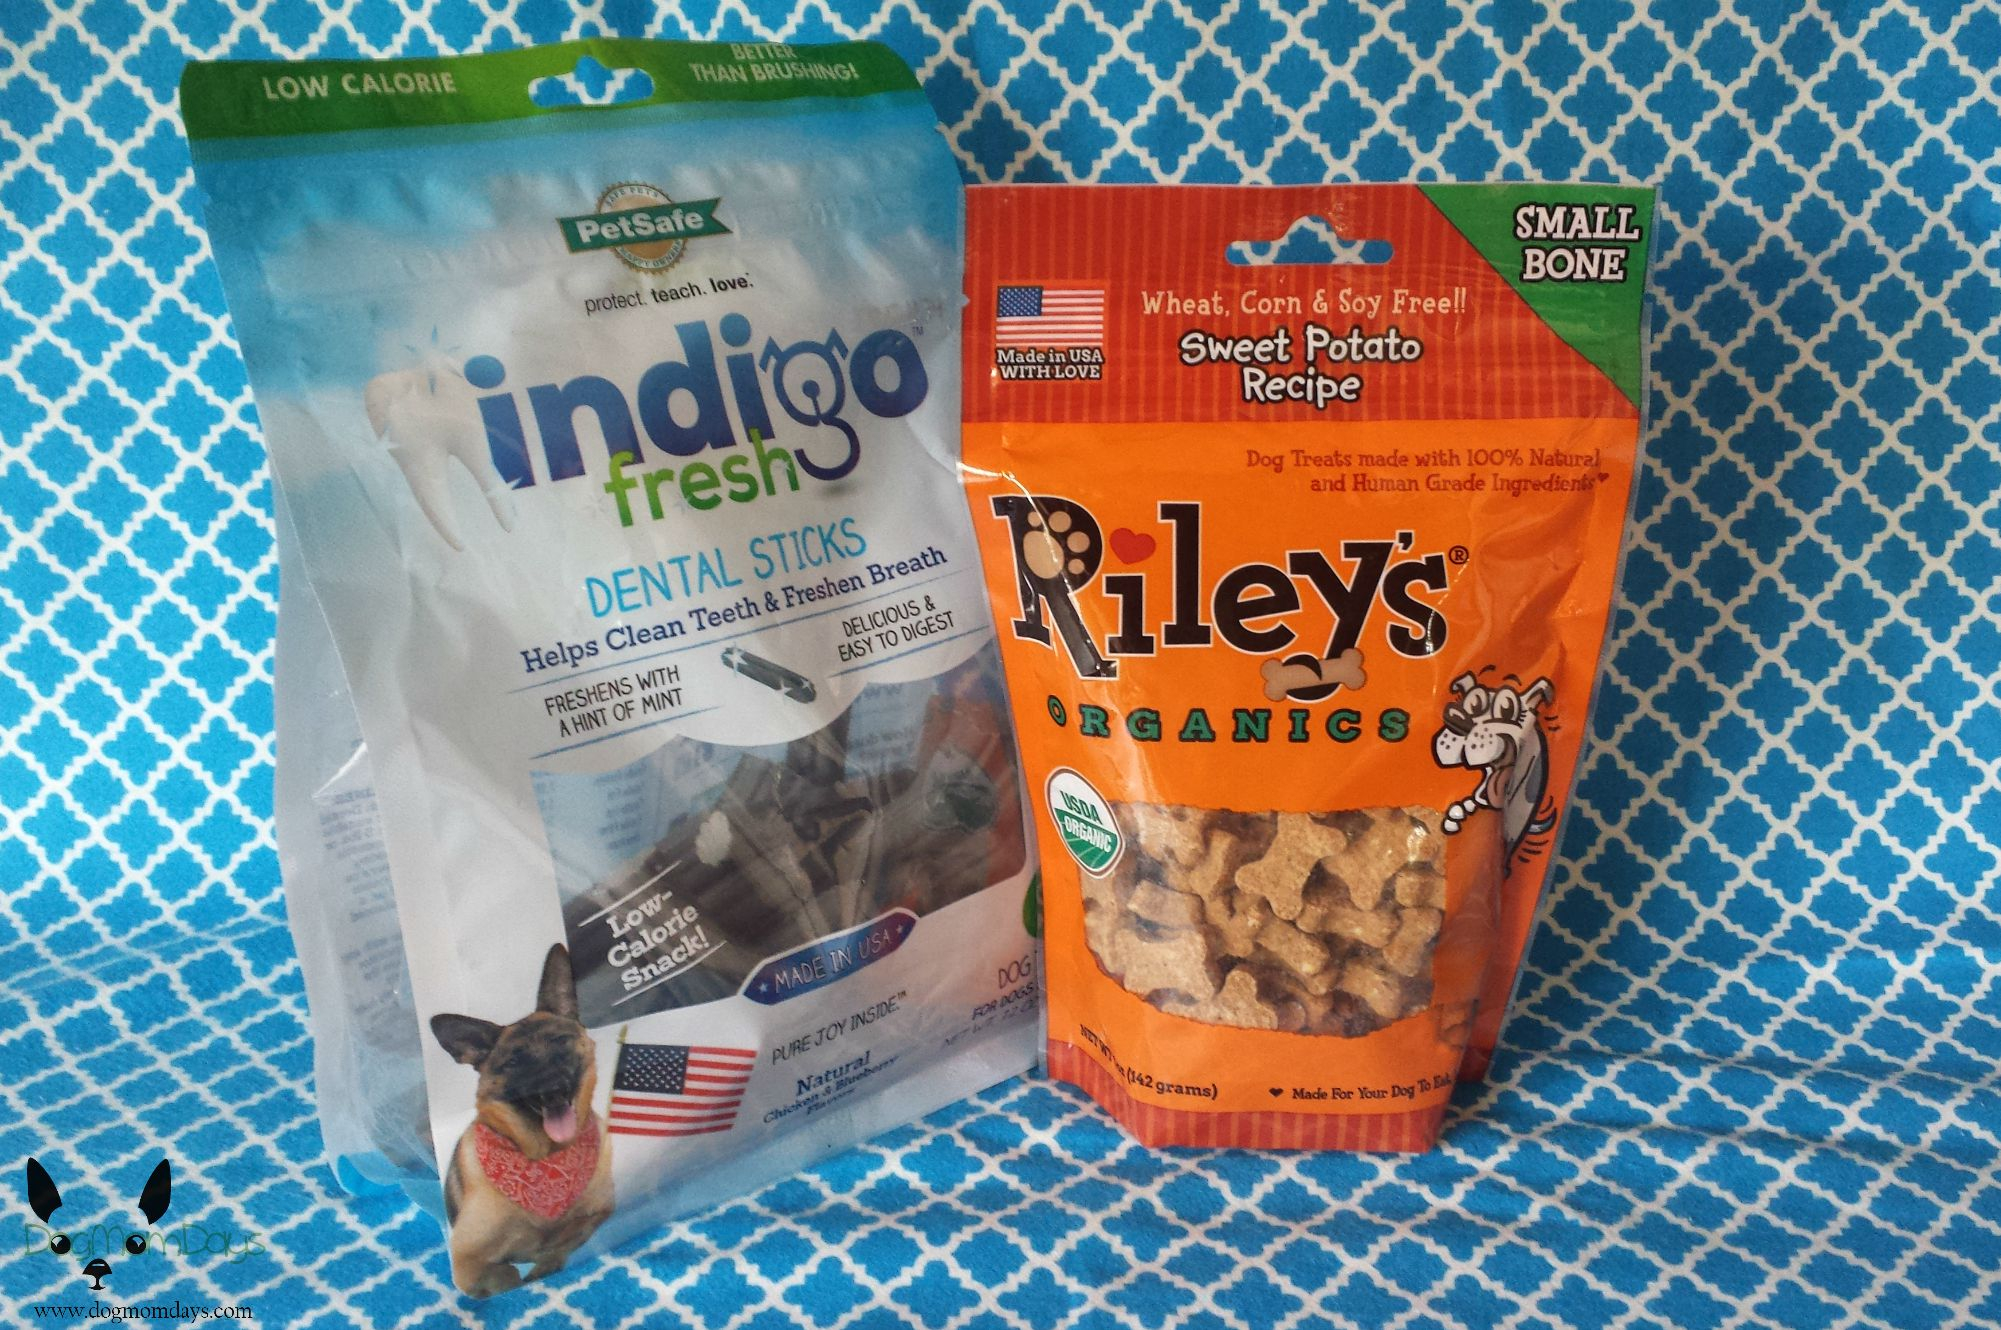 PetSafe and Riley's Organics